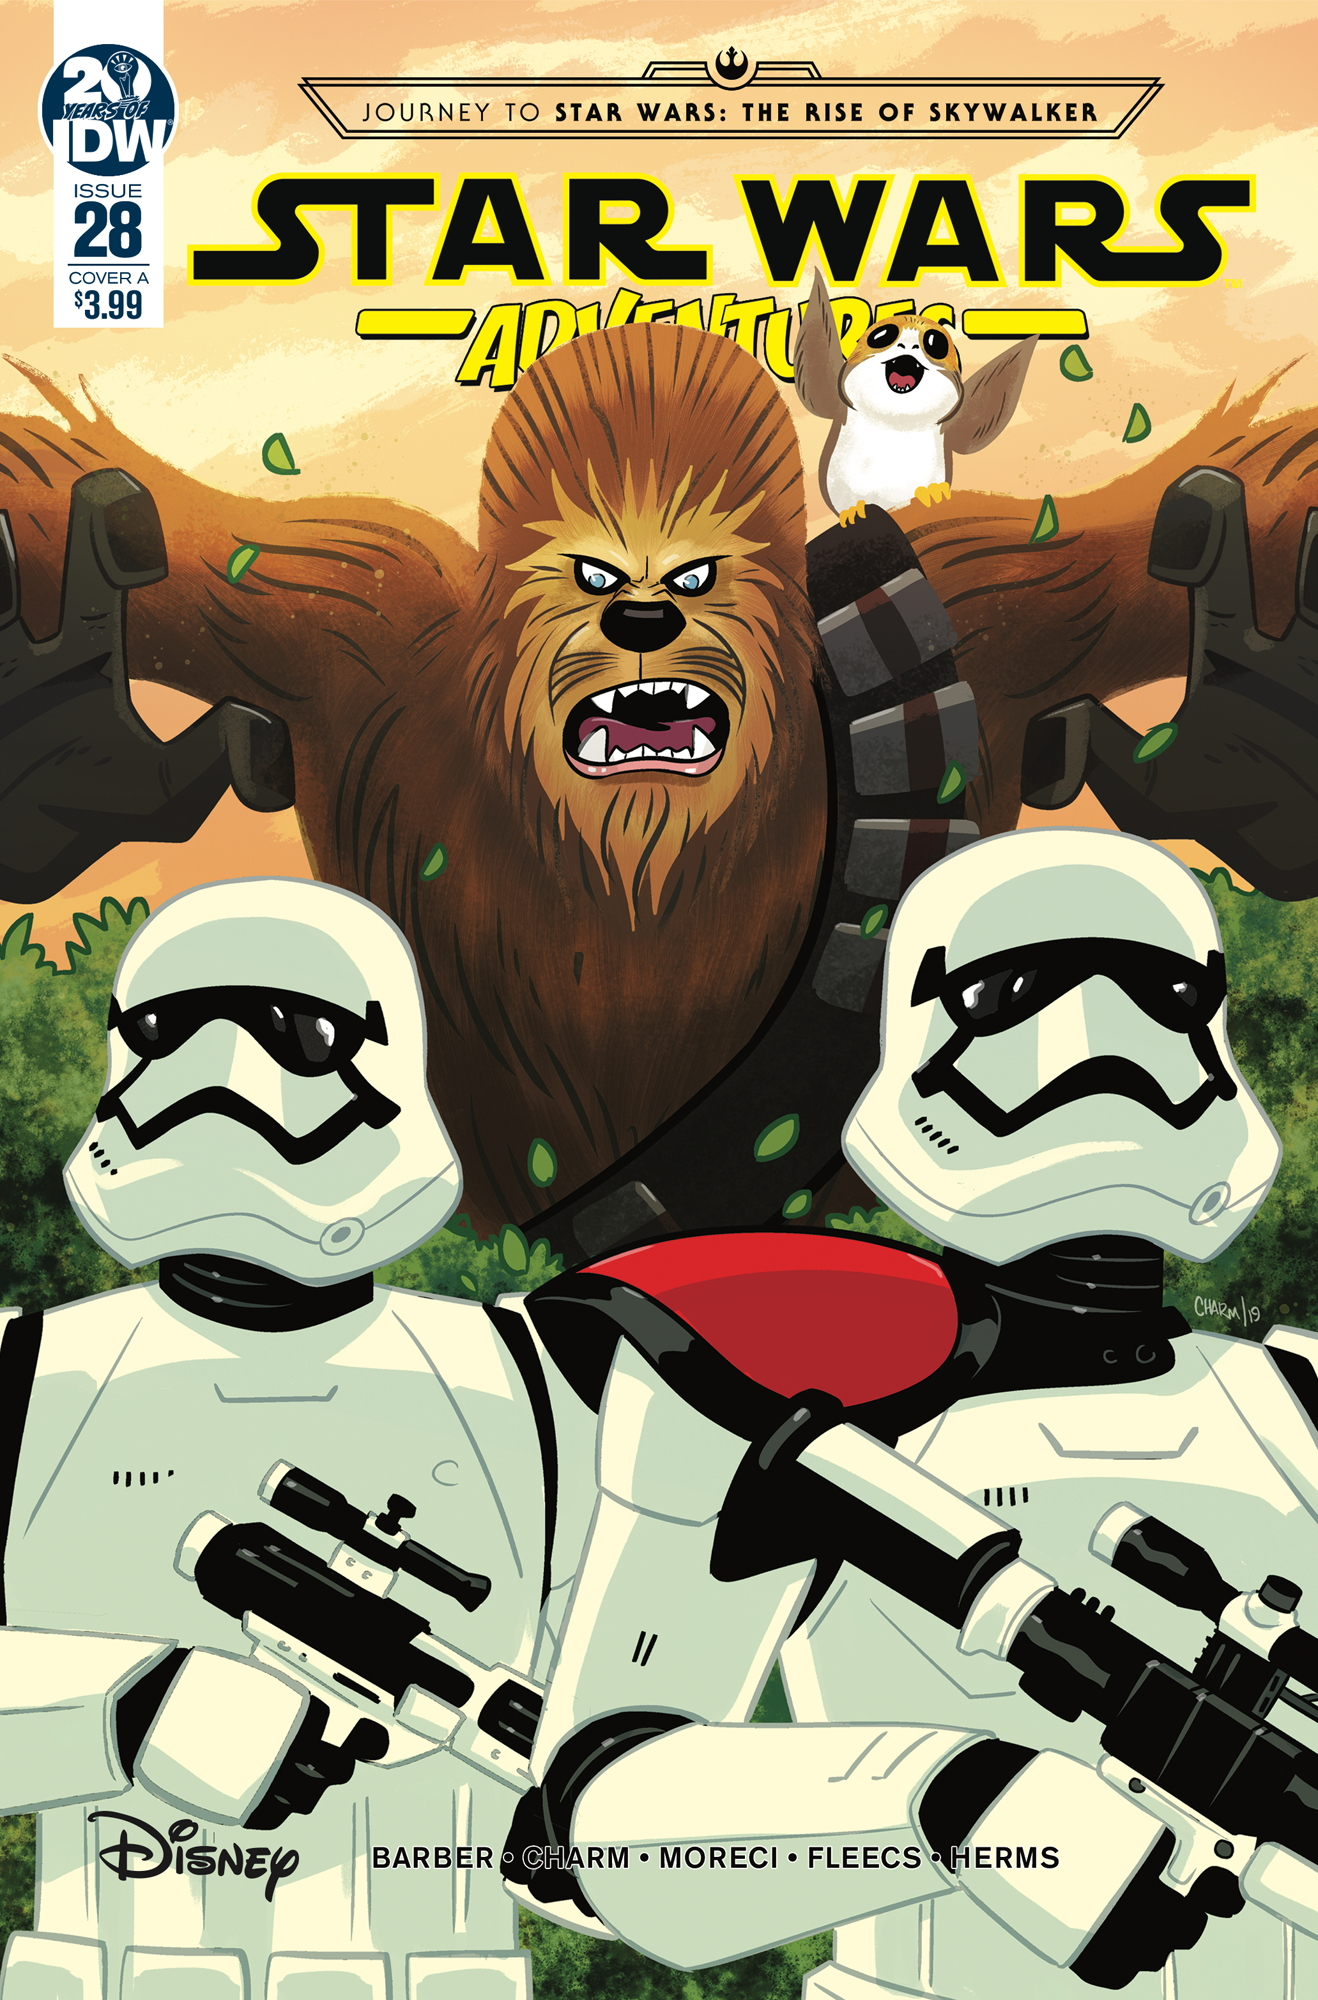 <em>Star Wars Adventures</em> #28 (Cover A by Derek Charm)